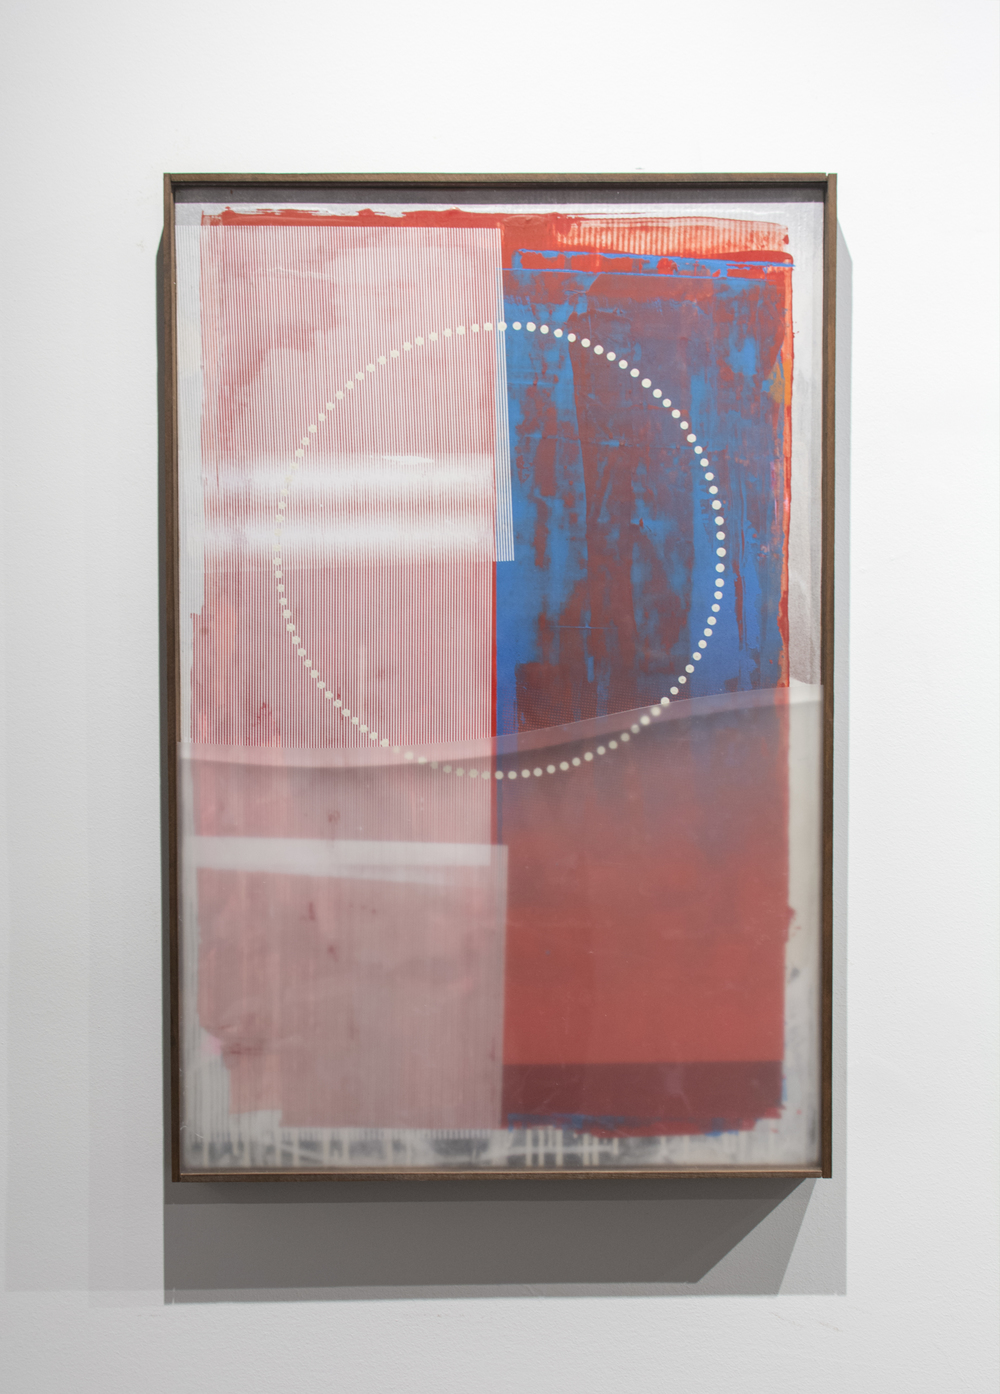 Erik Otto, Radiant 2, 2016. Enamel, acrylic, spray paint, screen print, framed with mylar. 24 x 36 in.